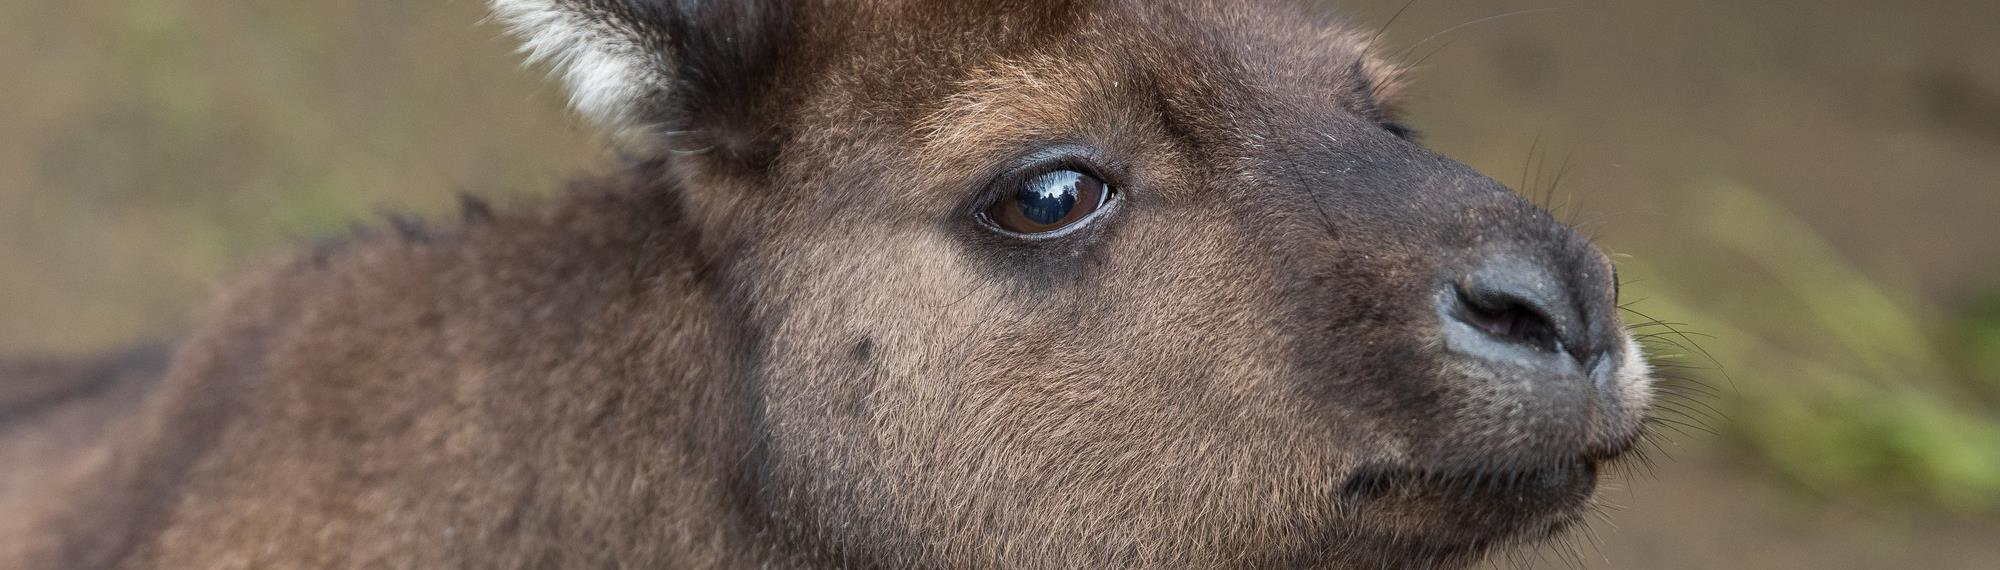 A close-up portrait of a Kangaroo Island Kangaroo. Detailed side view of fur up close and right eye.